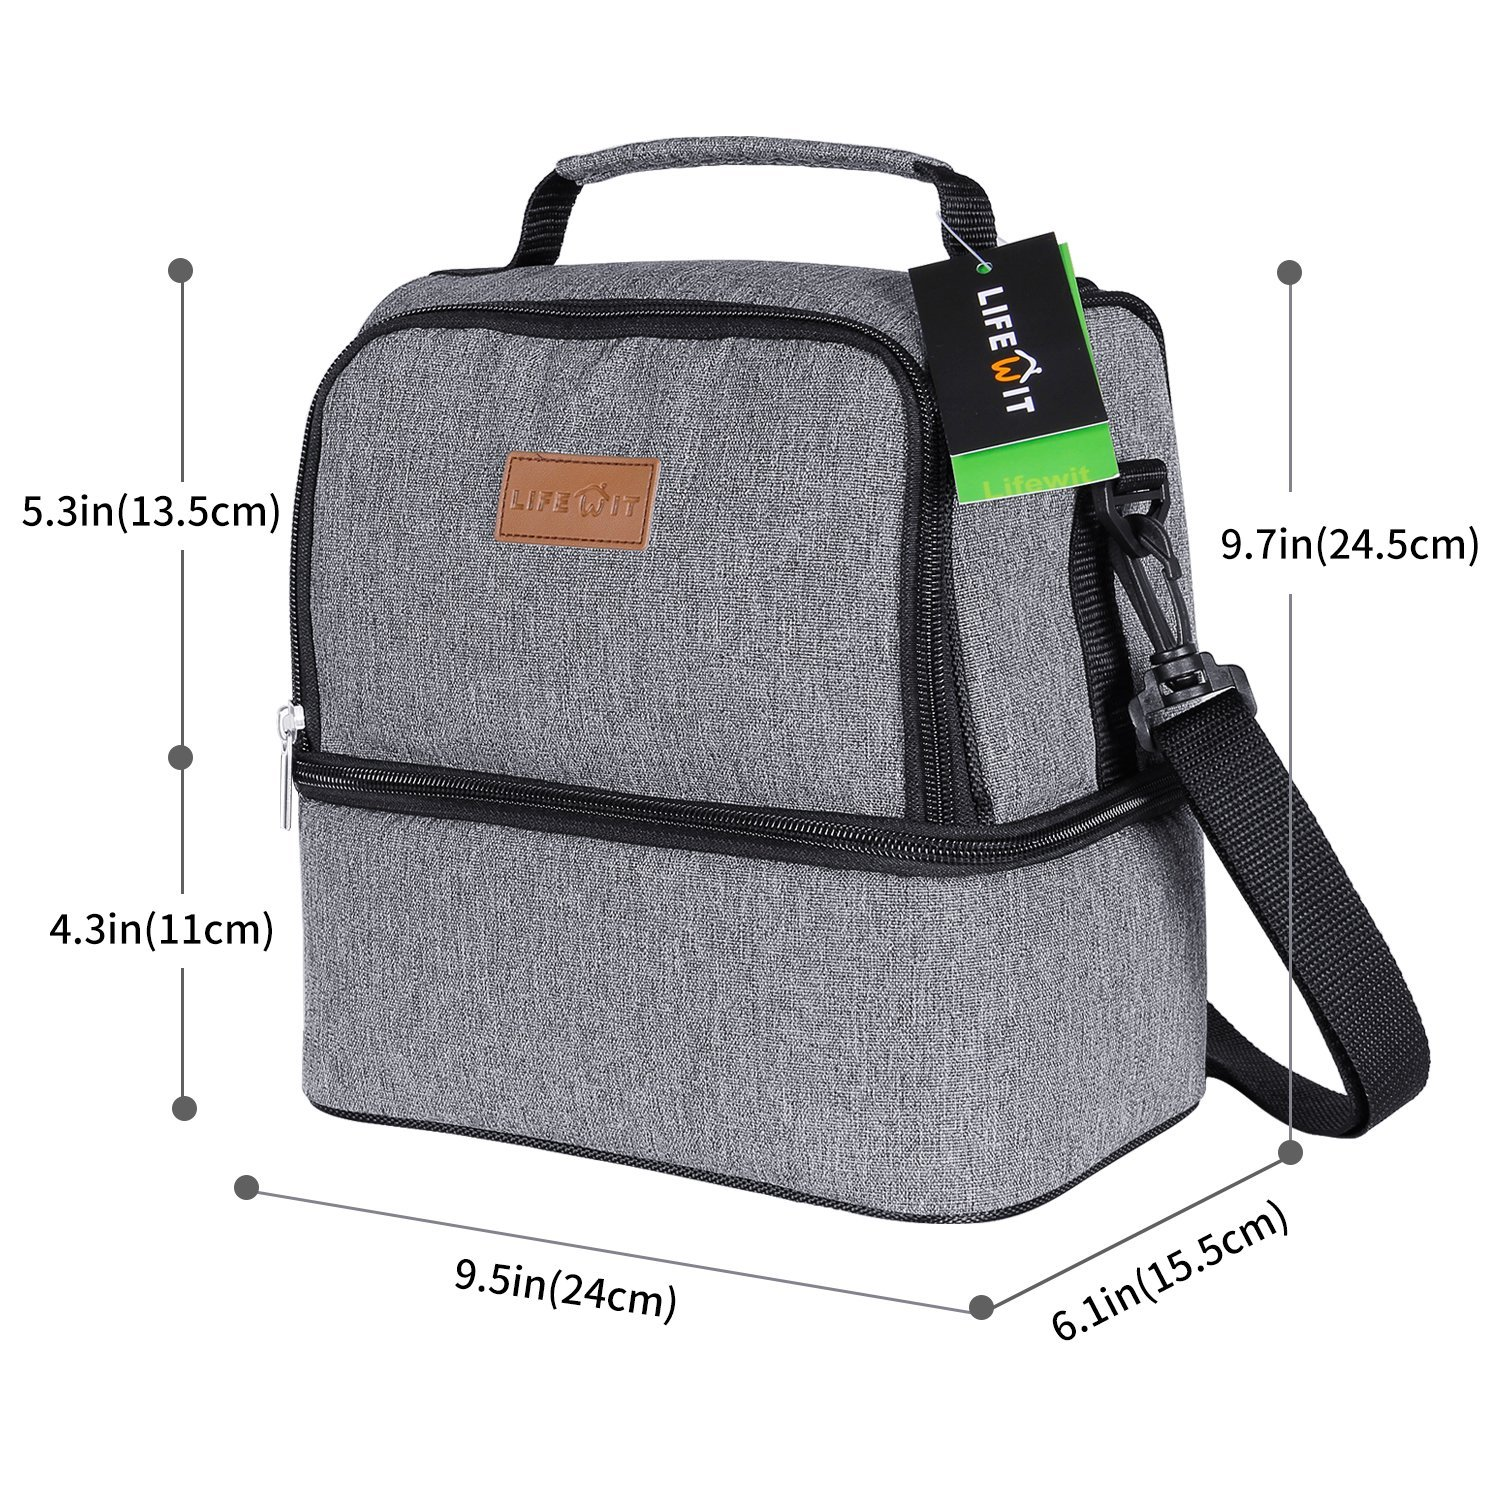 Lifewit Insulated Lunch Box Thermal Lunch Bag Best Offer